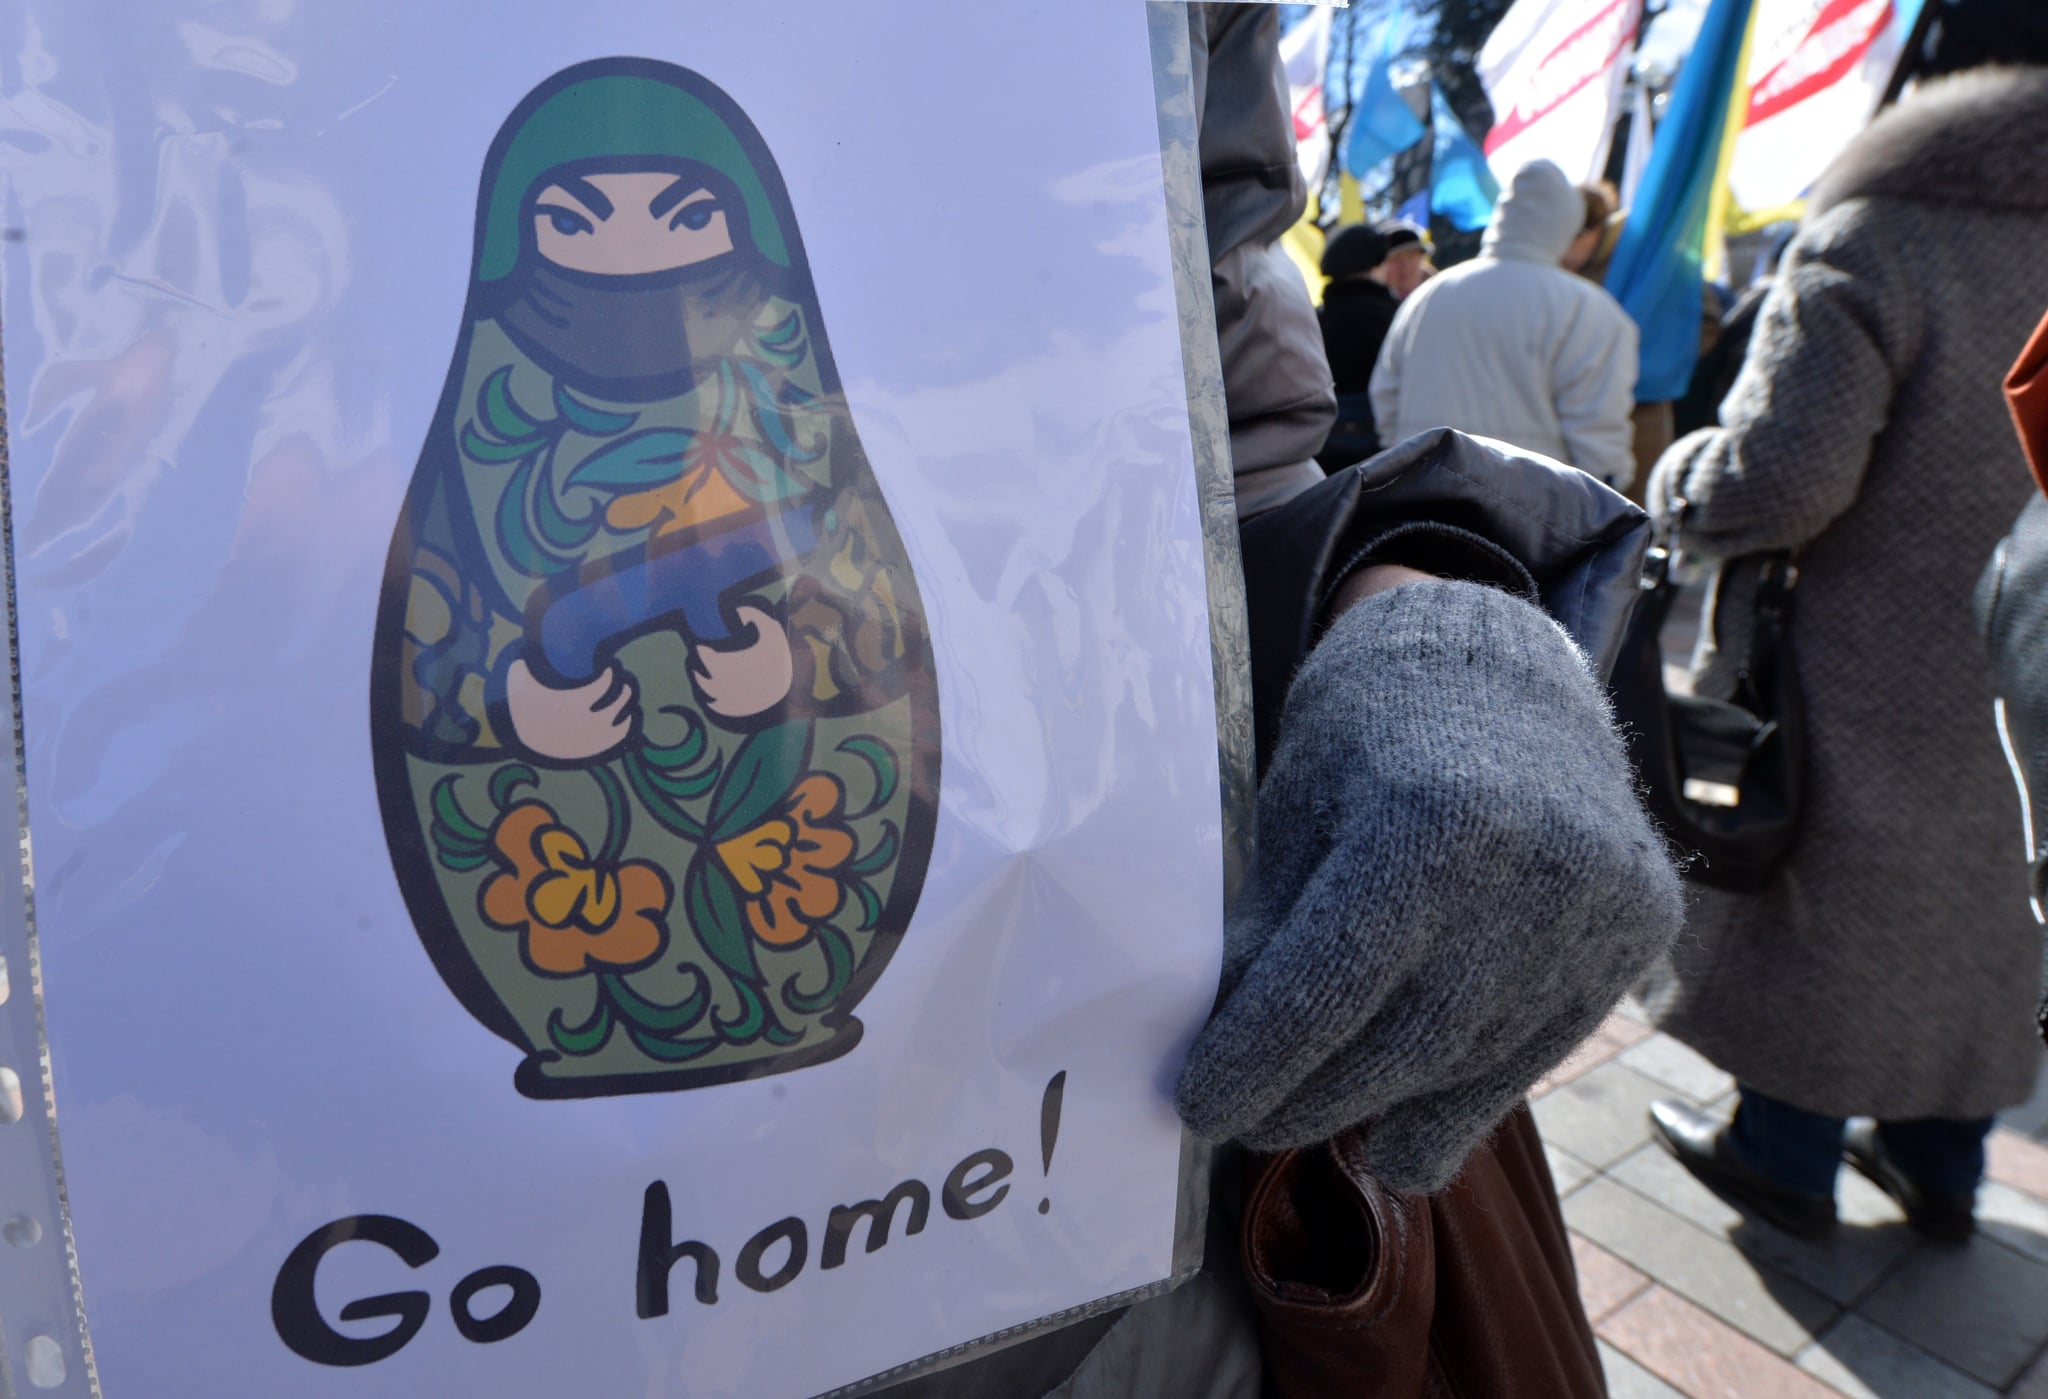 But obviously, not everyone was happy about the results. In Kiev on Monday, a woman held a sign telling Russia to go home, as Ukraine's defense minister said Ukrainian troops would remain in the peninsula.